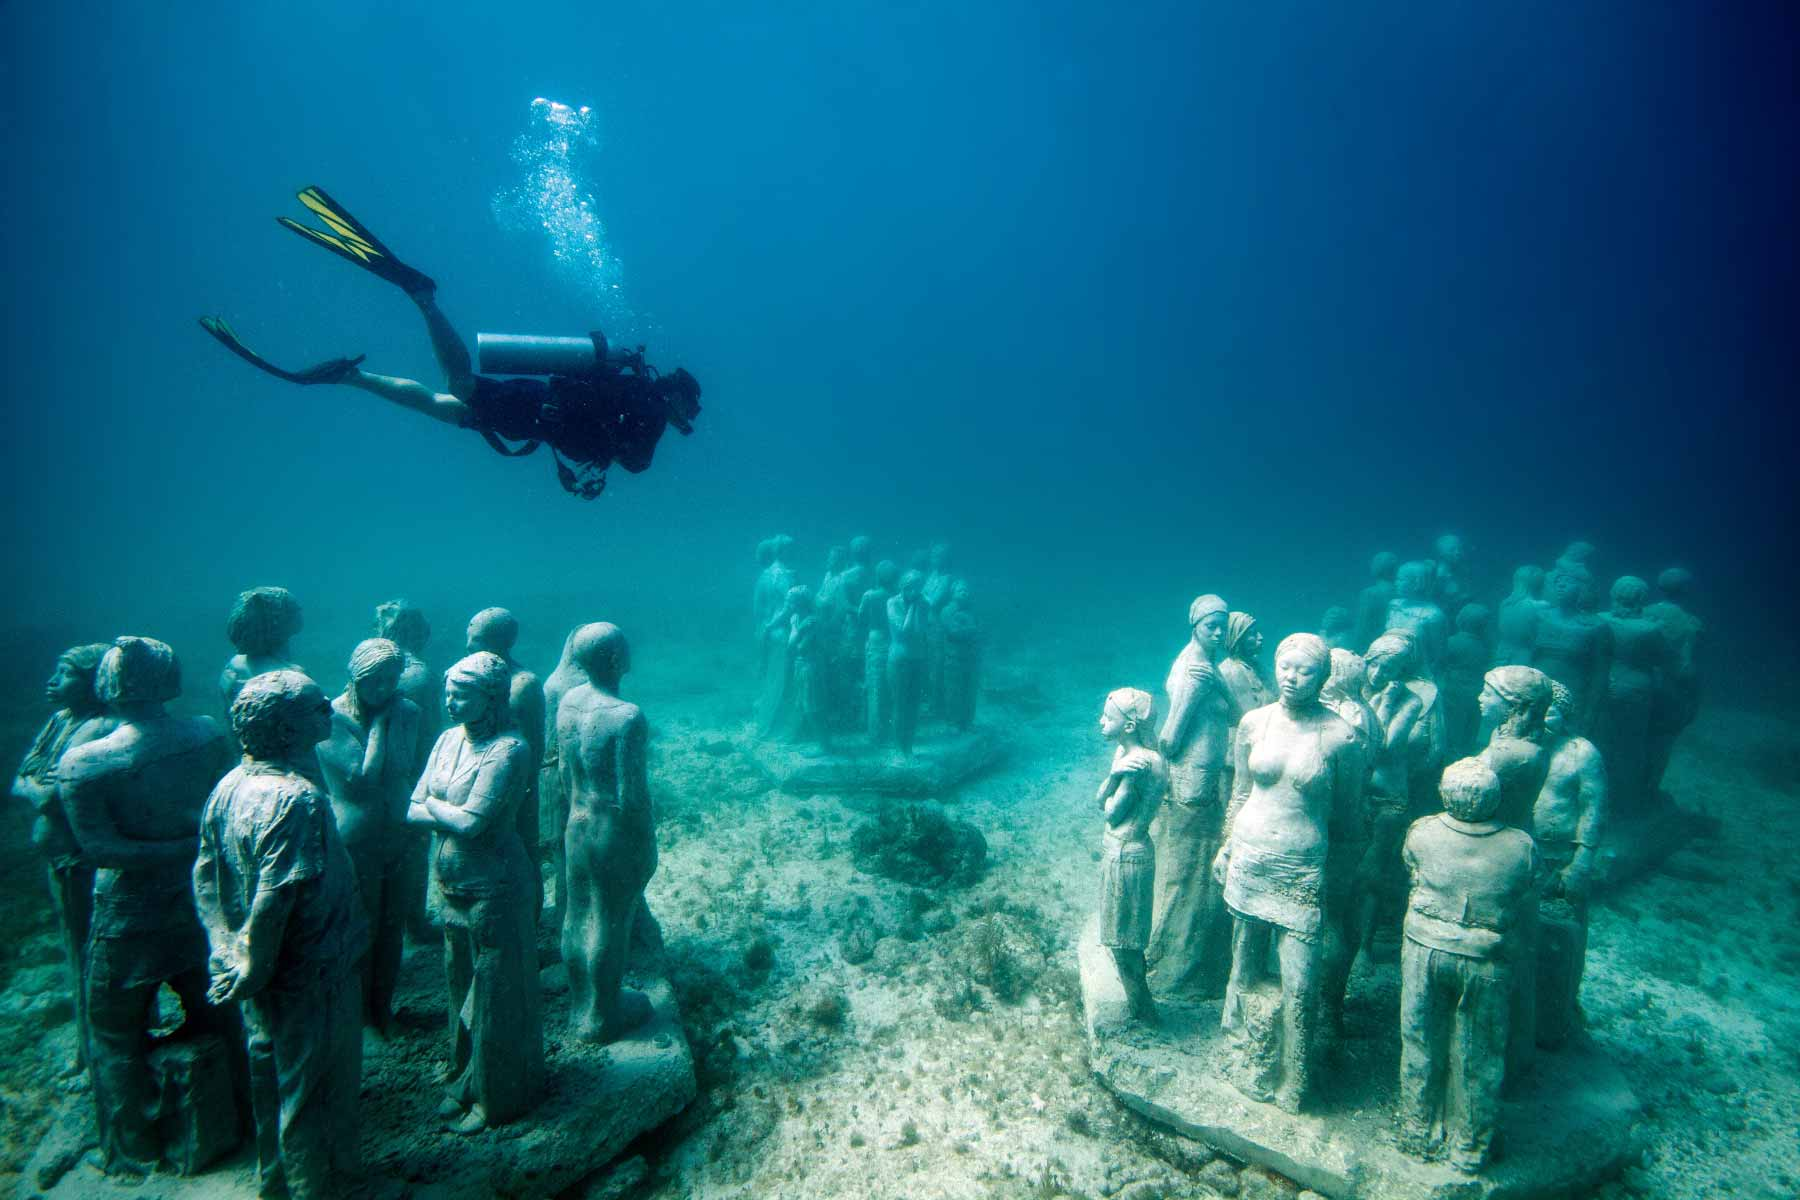 The-Silent-Evolution-in-Manchones-Jason-deCaires-Taylor-Sculpture